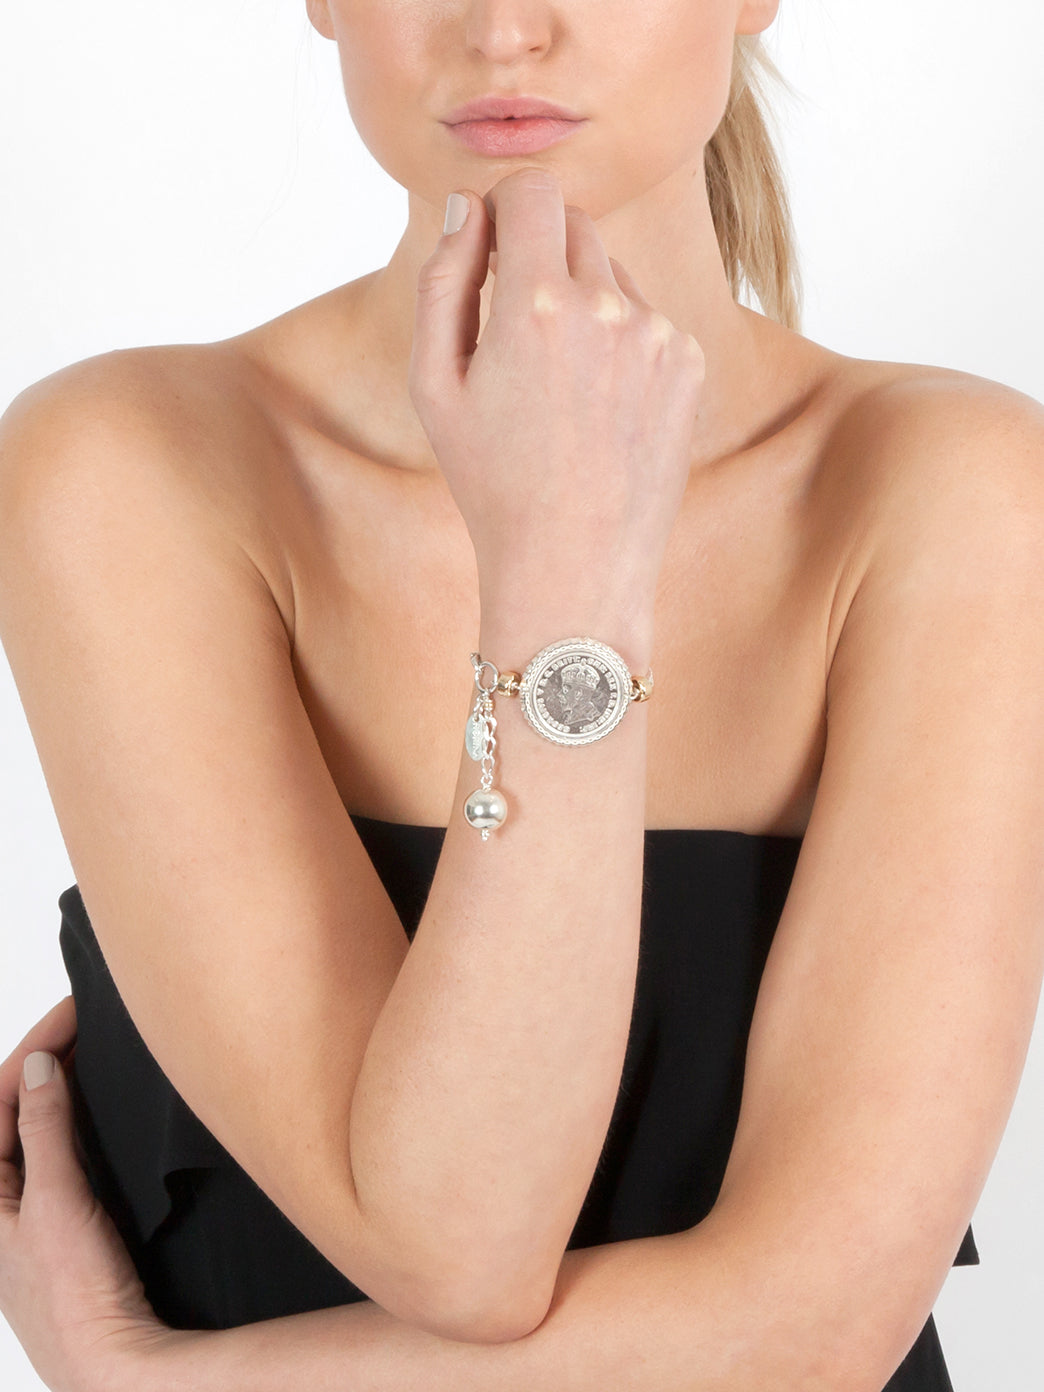 Fiorina Jewellery Falcon Bracelet Model